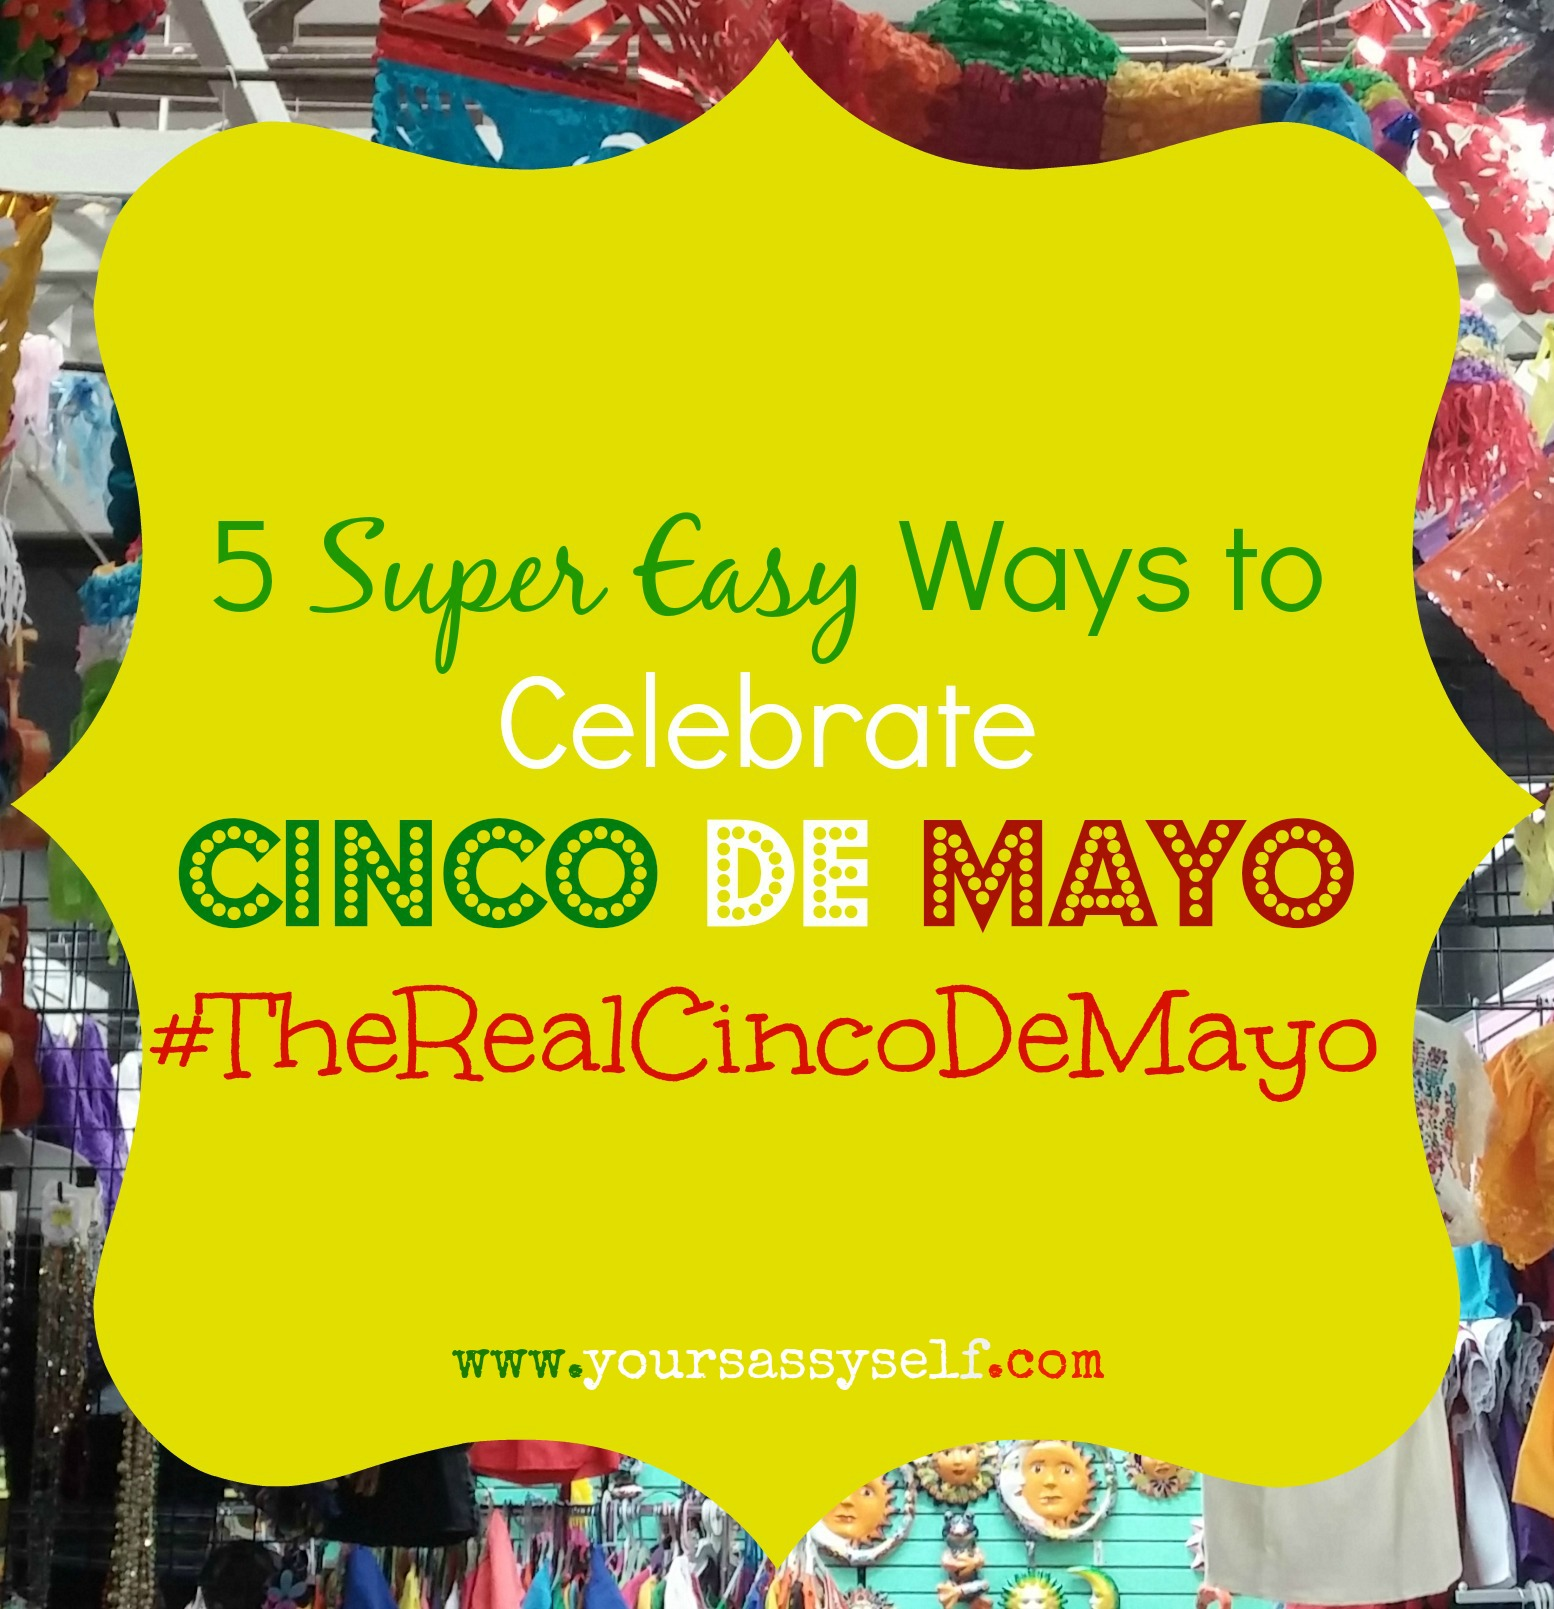 5 Super Easy Ways to Celebrate Cinco de Mayo #TheRealCincoDeMayo